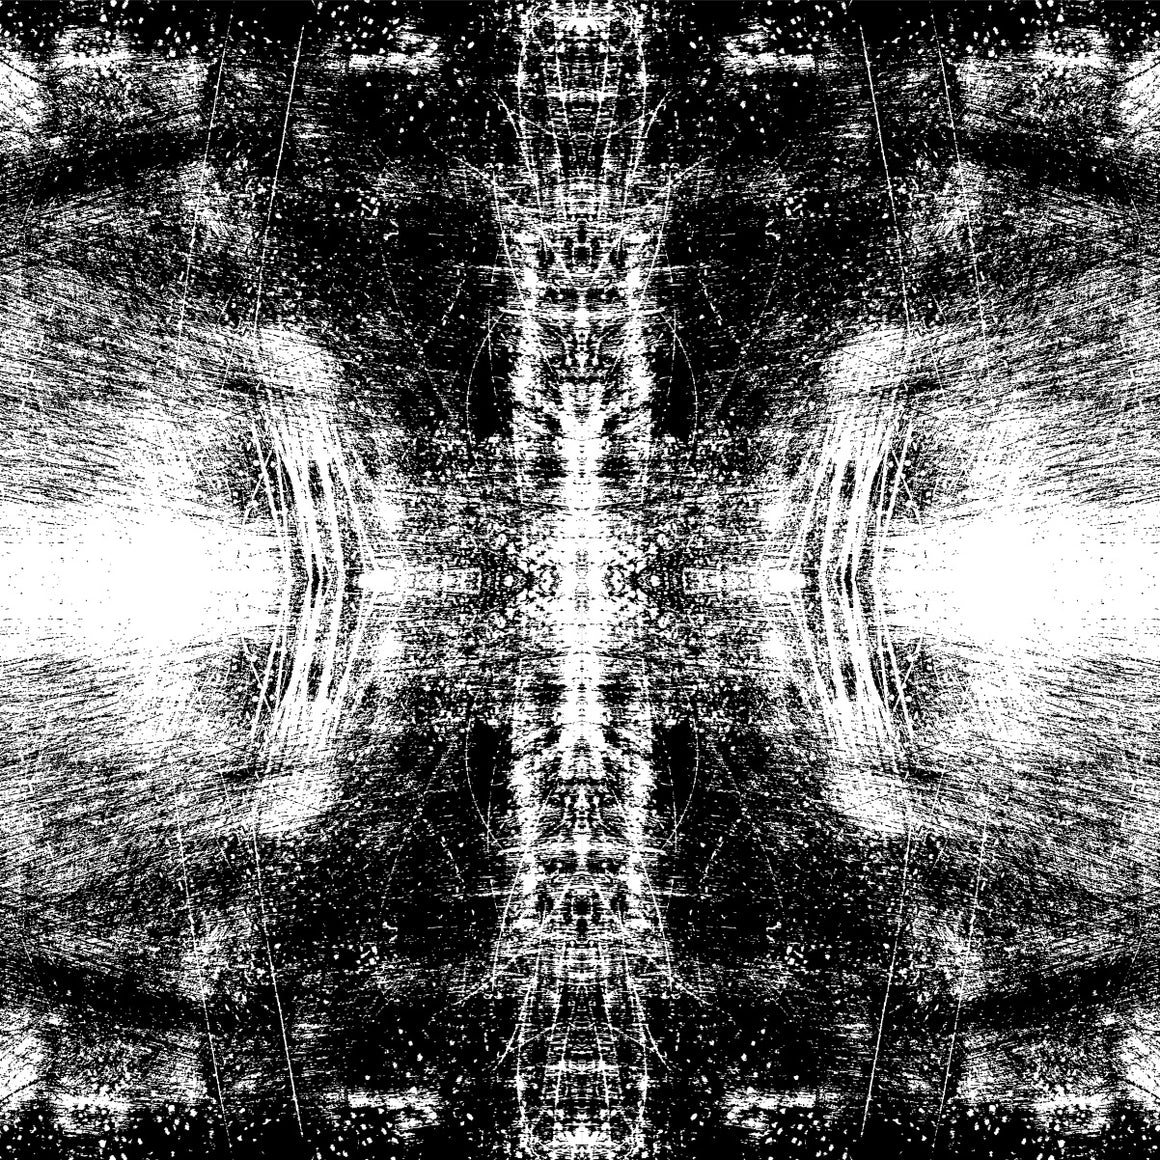 Black and white mirrored image of a scratching like texture design.